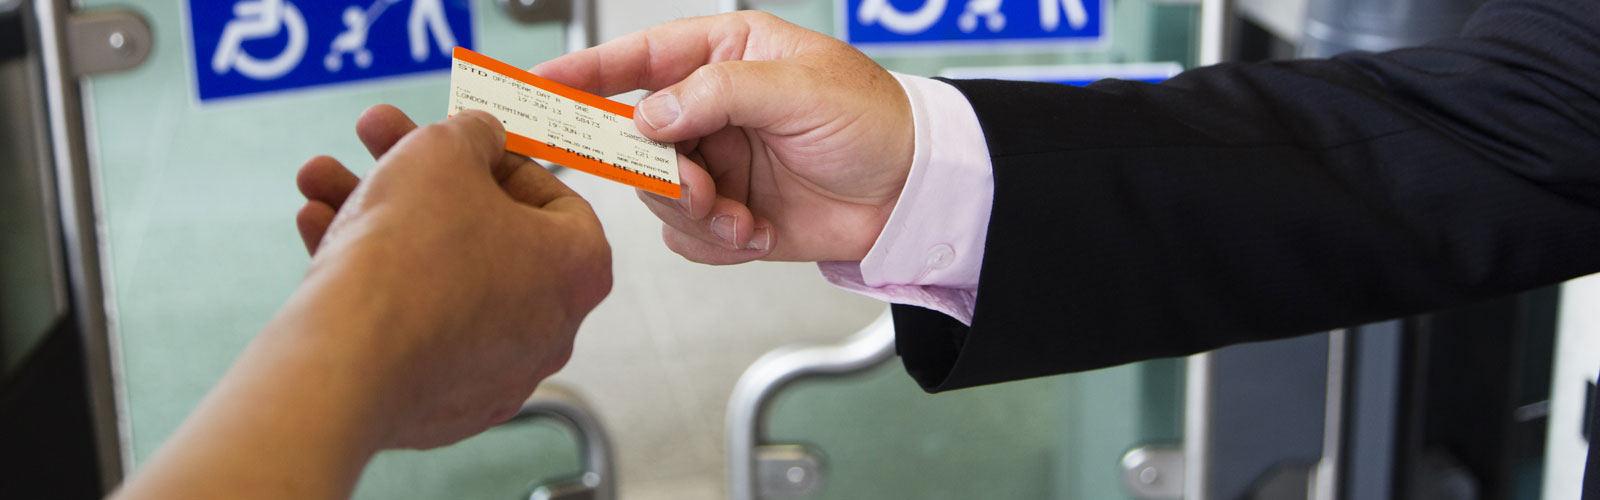 Penalty Fares and Unpaid Fare Notices